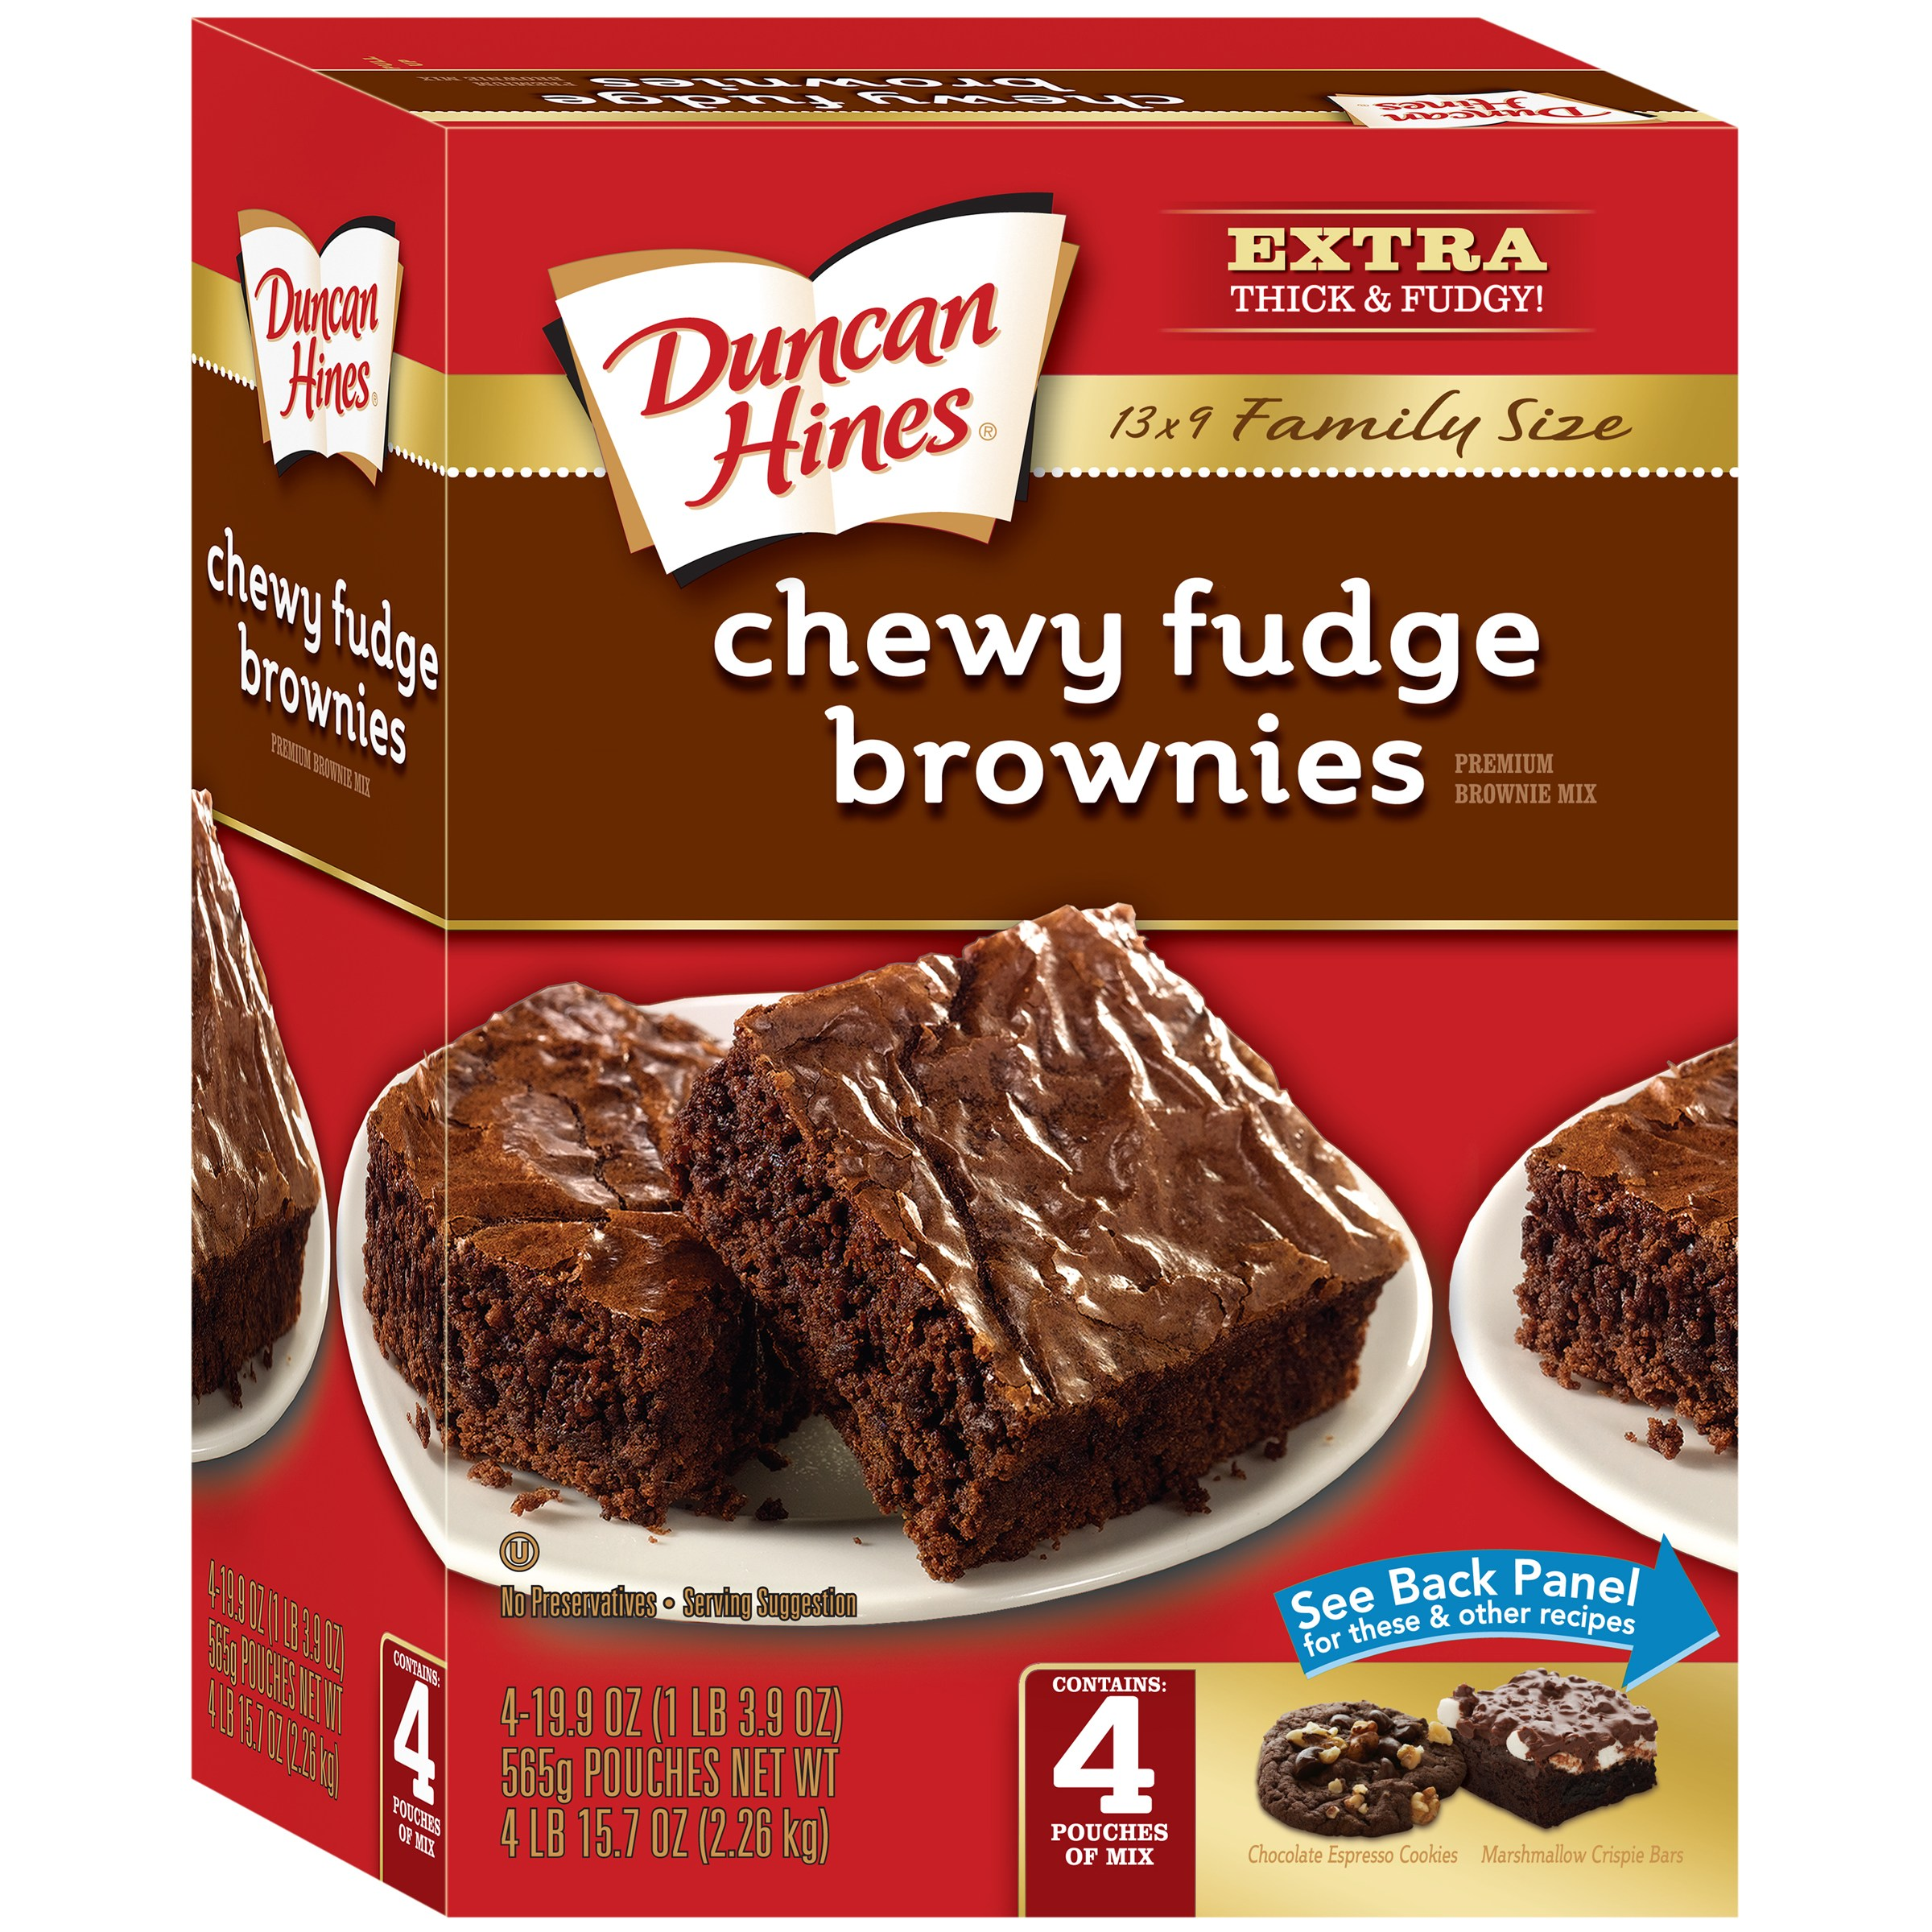 (4 Pack) Duncan Hines Family Size Chewy Fudge Brownie Mix, 19.9 oz